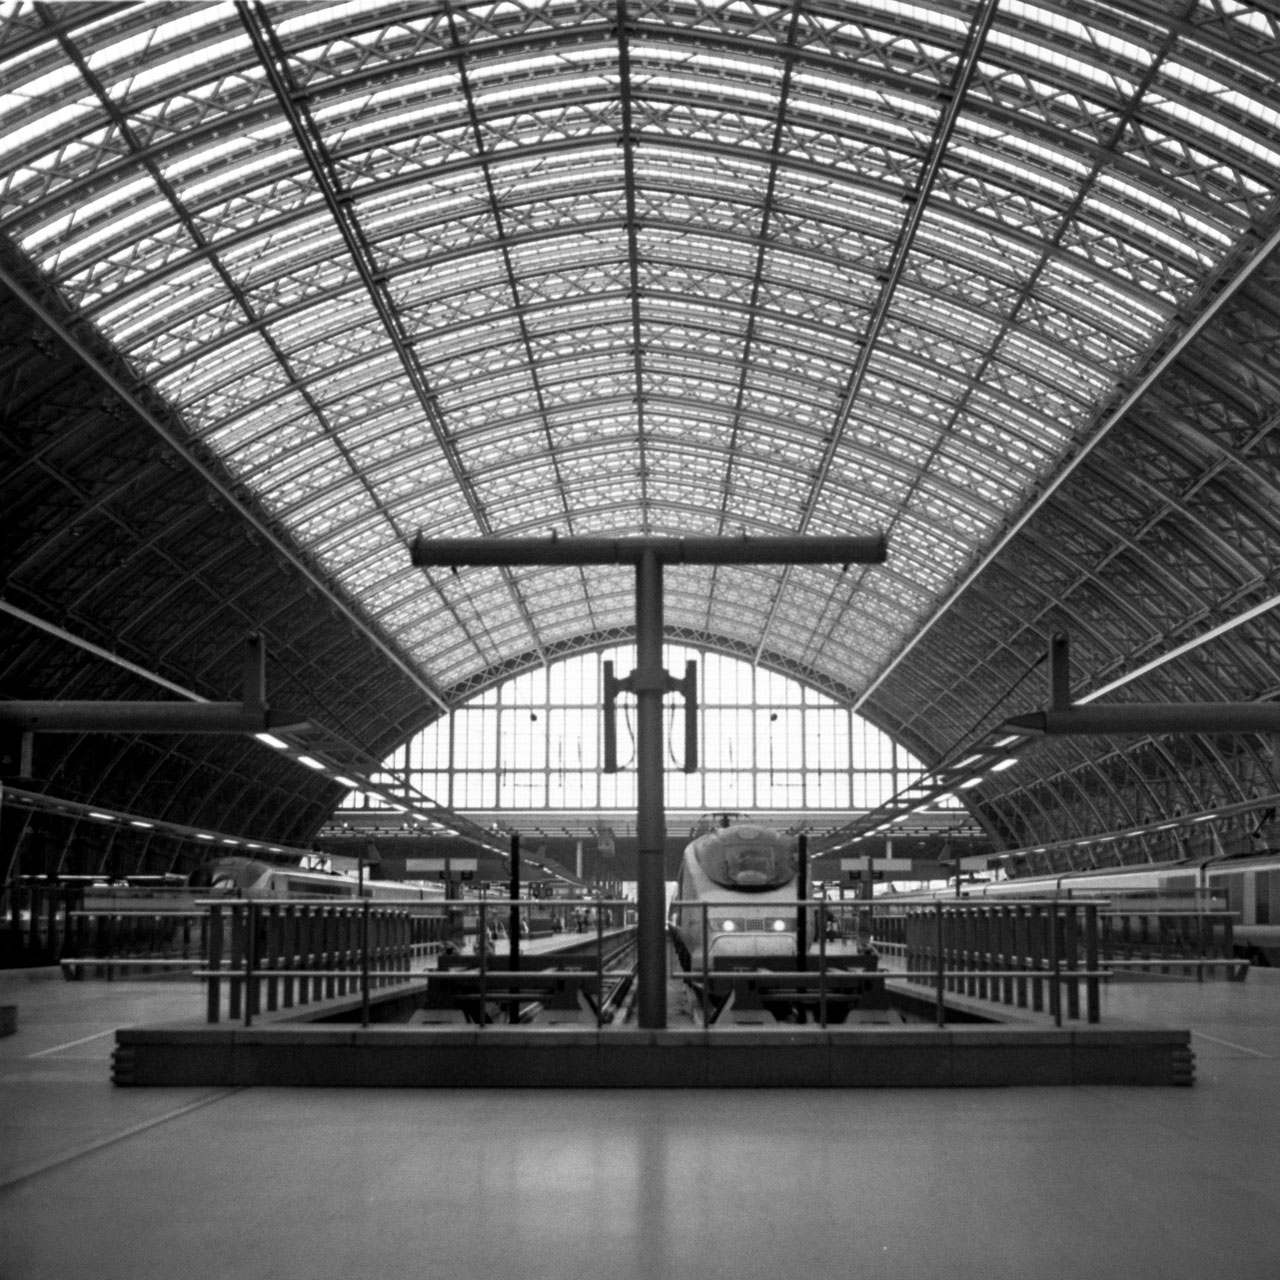 Train station hangar